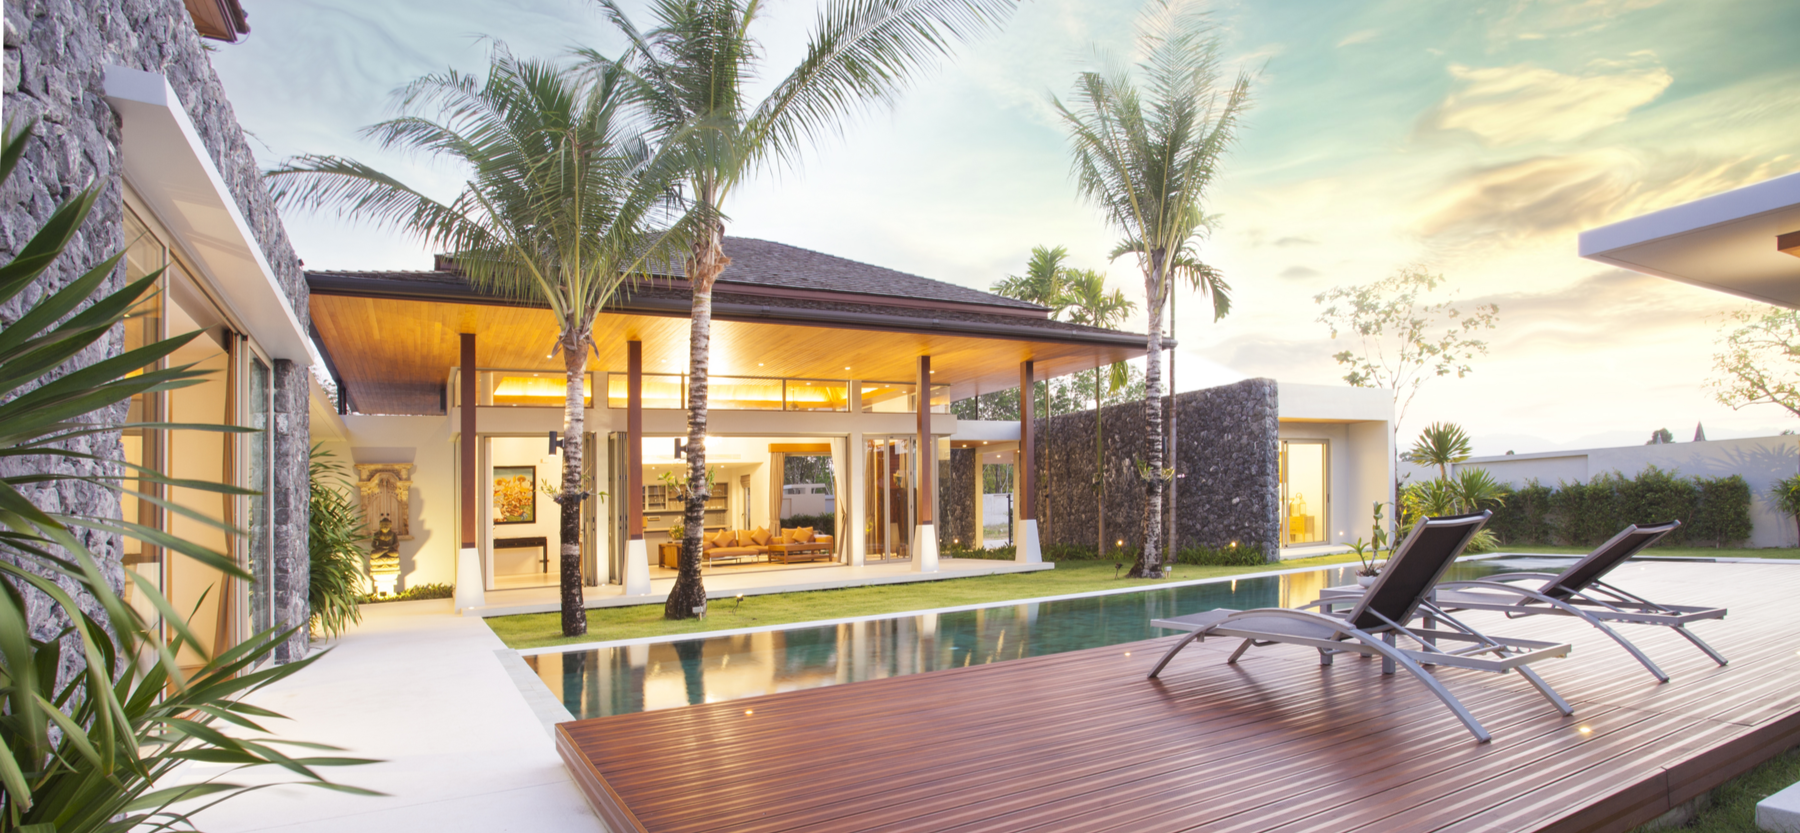 What Makes Luxury Real Estate Projects Successful?